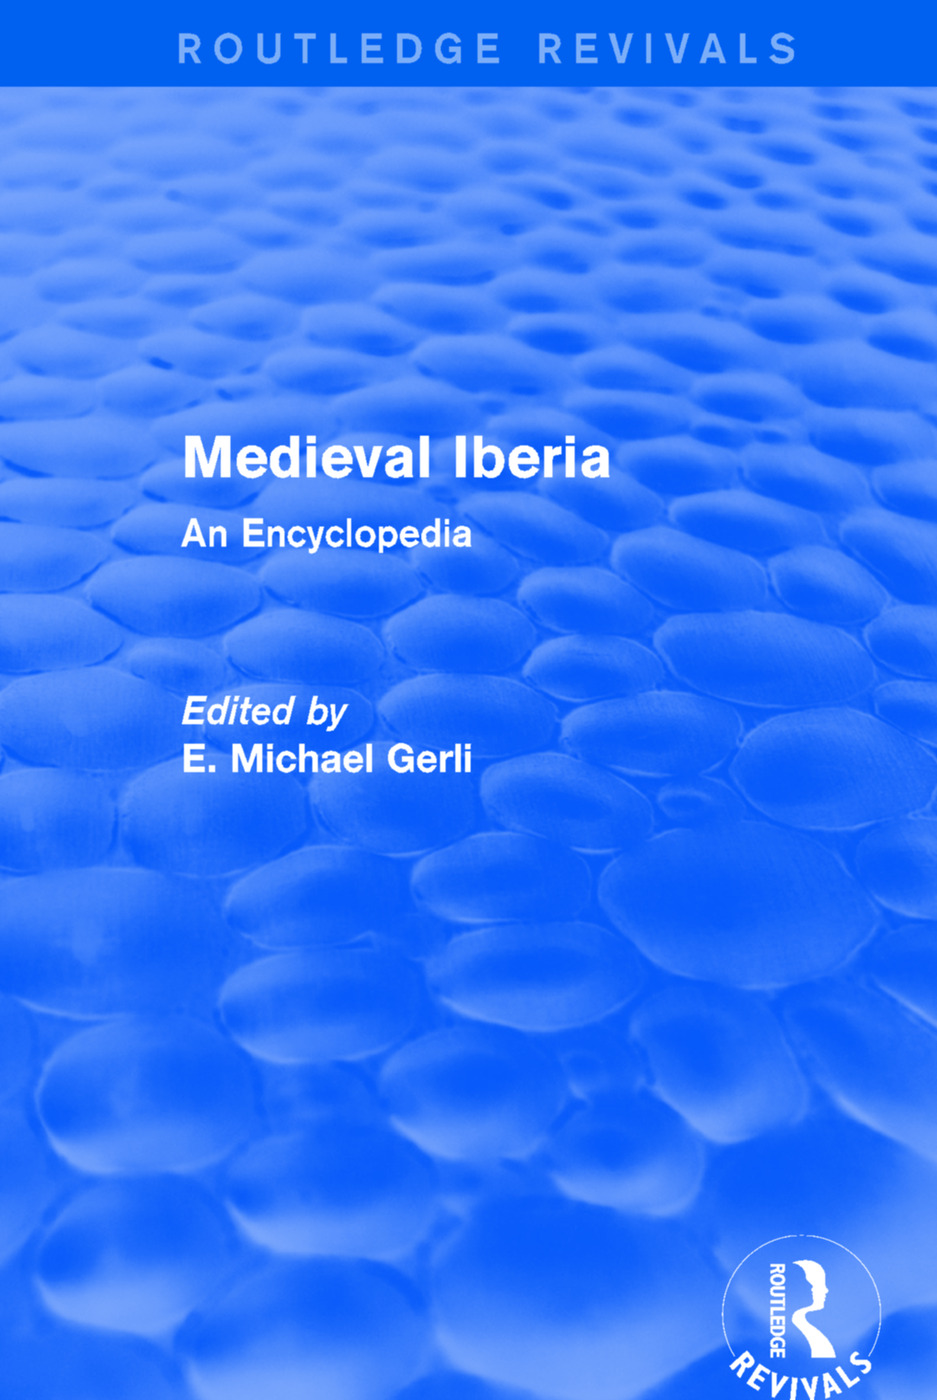 Routledge Revivals: Medieval Iberia (2003): An Encyclopedia, 1st Edition (Paperback) book cover